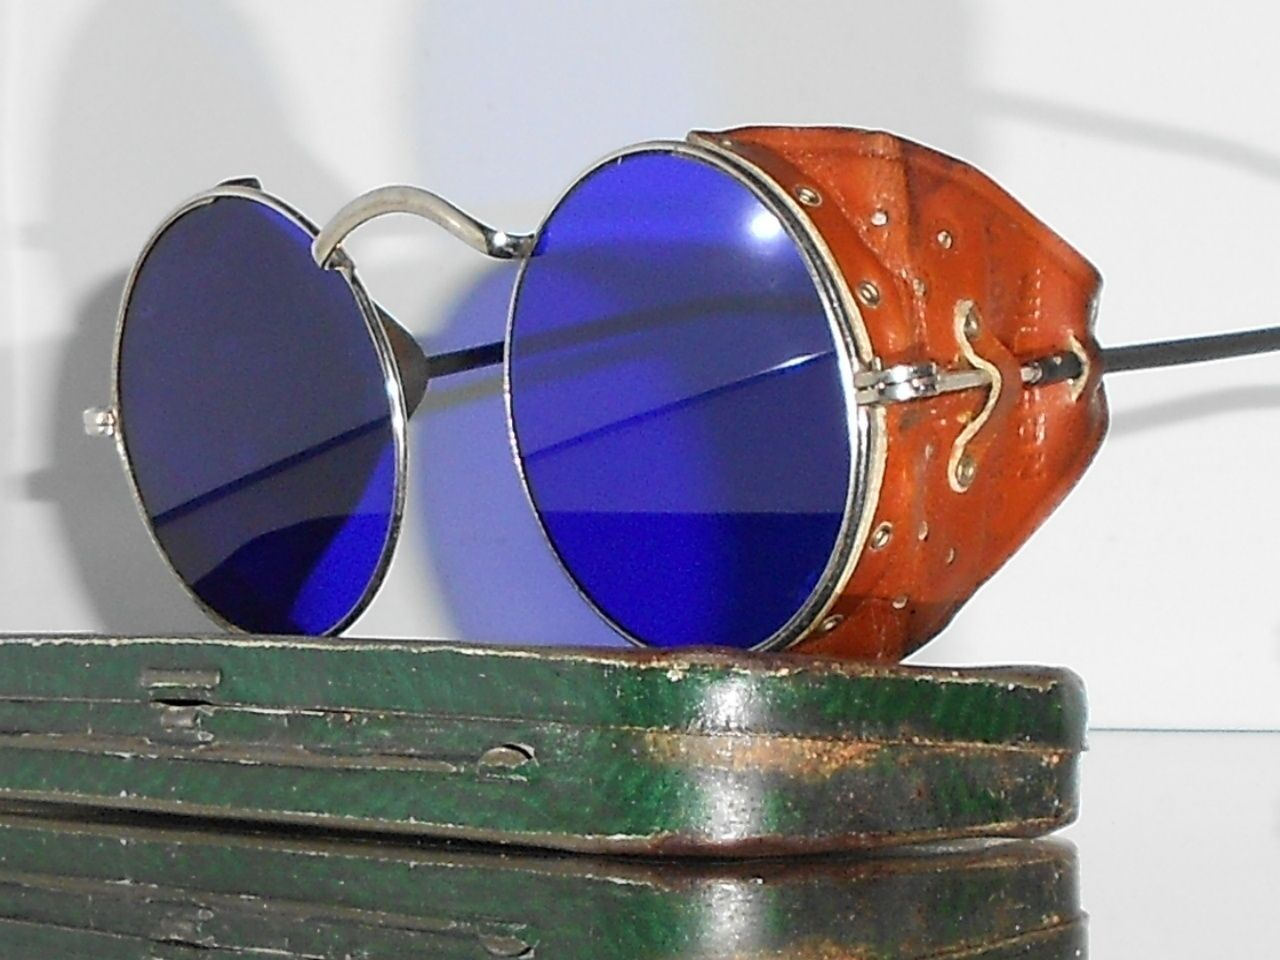 15a97ff799d Goggles Vtg Steampunk Motorcycle Matsuda Antique Safety Sun Glasses w  Shields